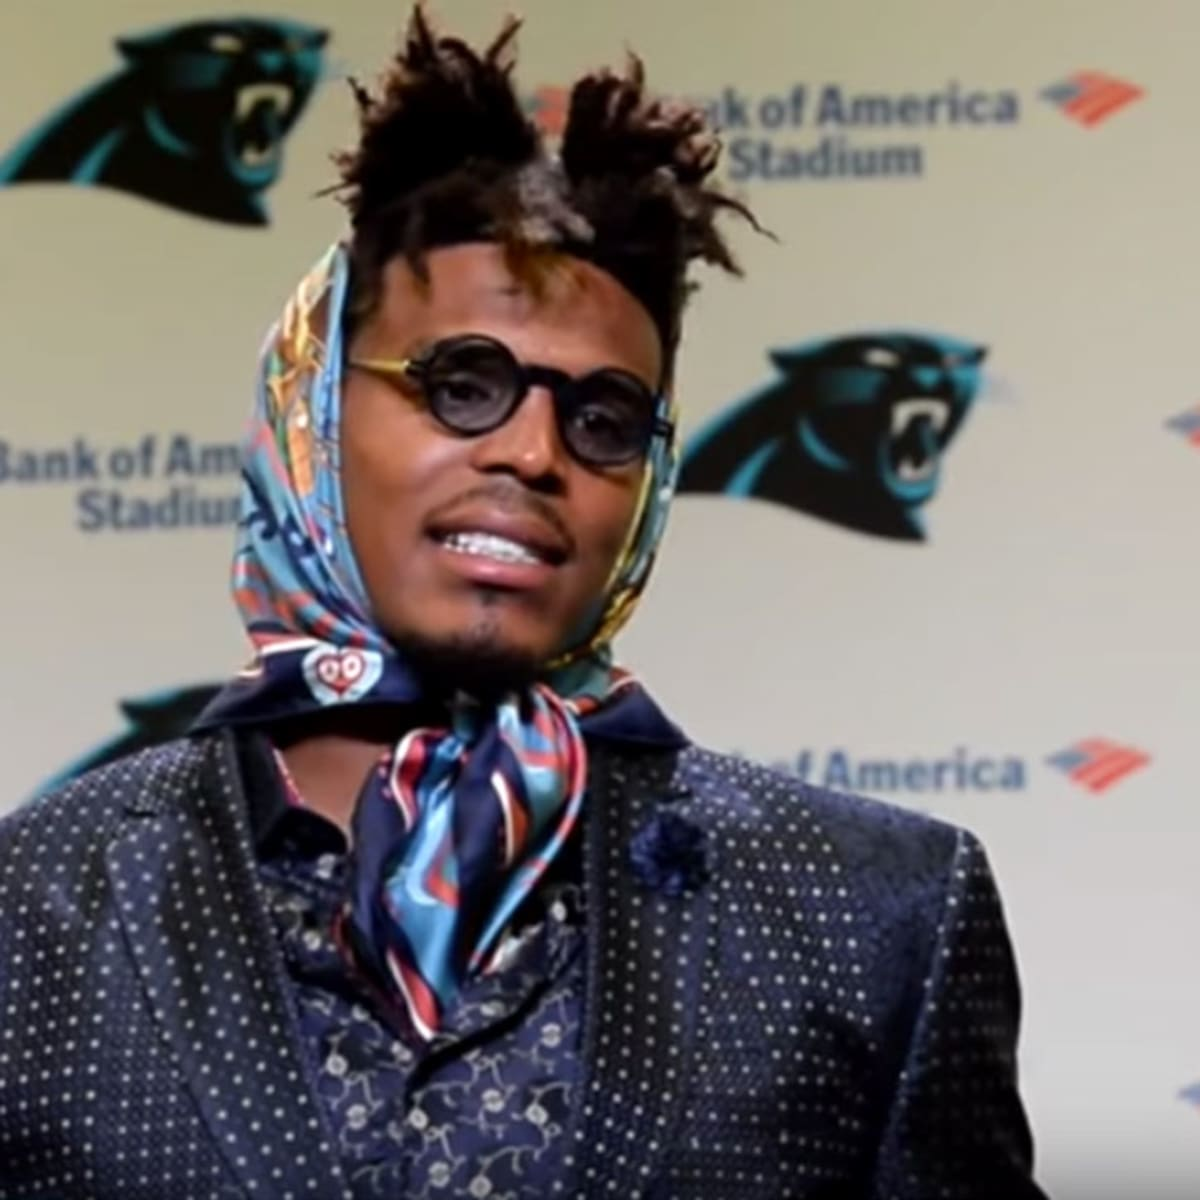 Cam Newton Postgame Outfit Generates Hilarious Twitter Reaction Sports Illustrated